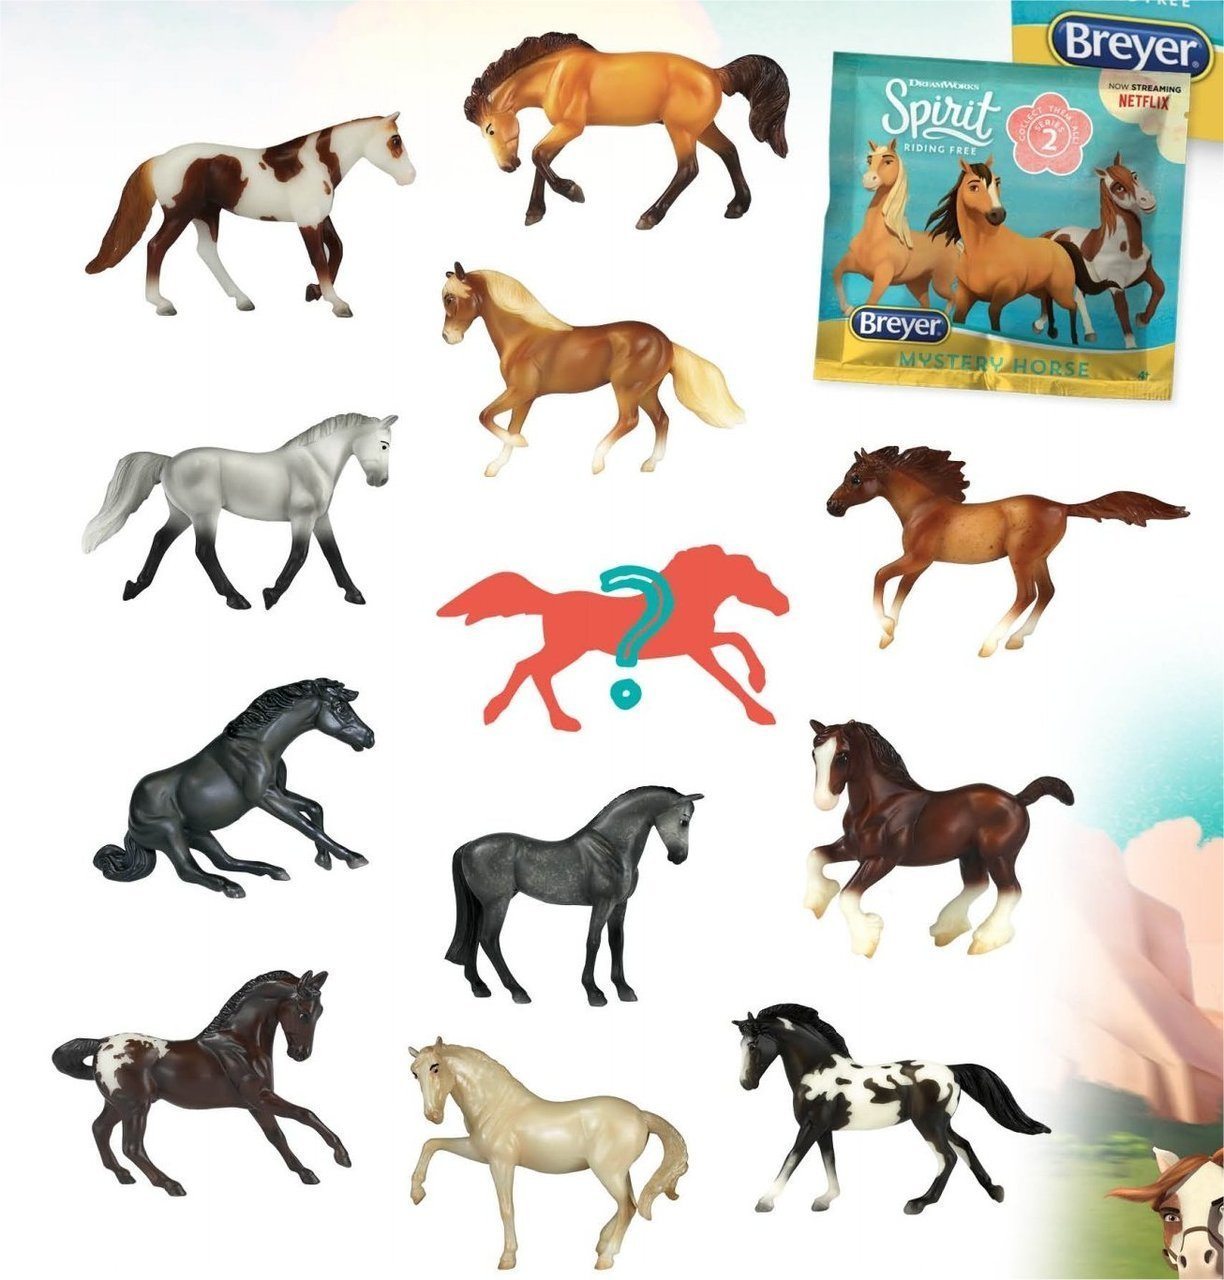 Breyer Spirit Riding Free Blind Bag 1:32 Model Horse, Series 2: One Random